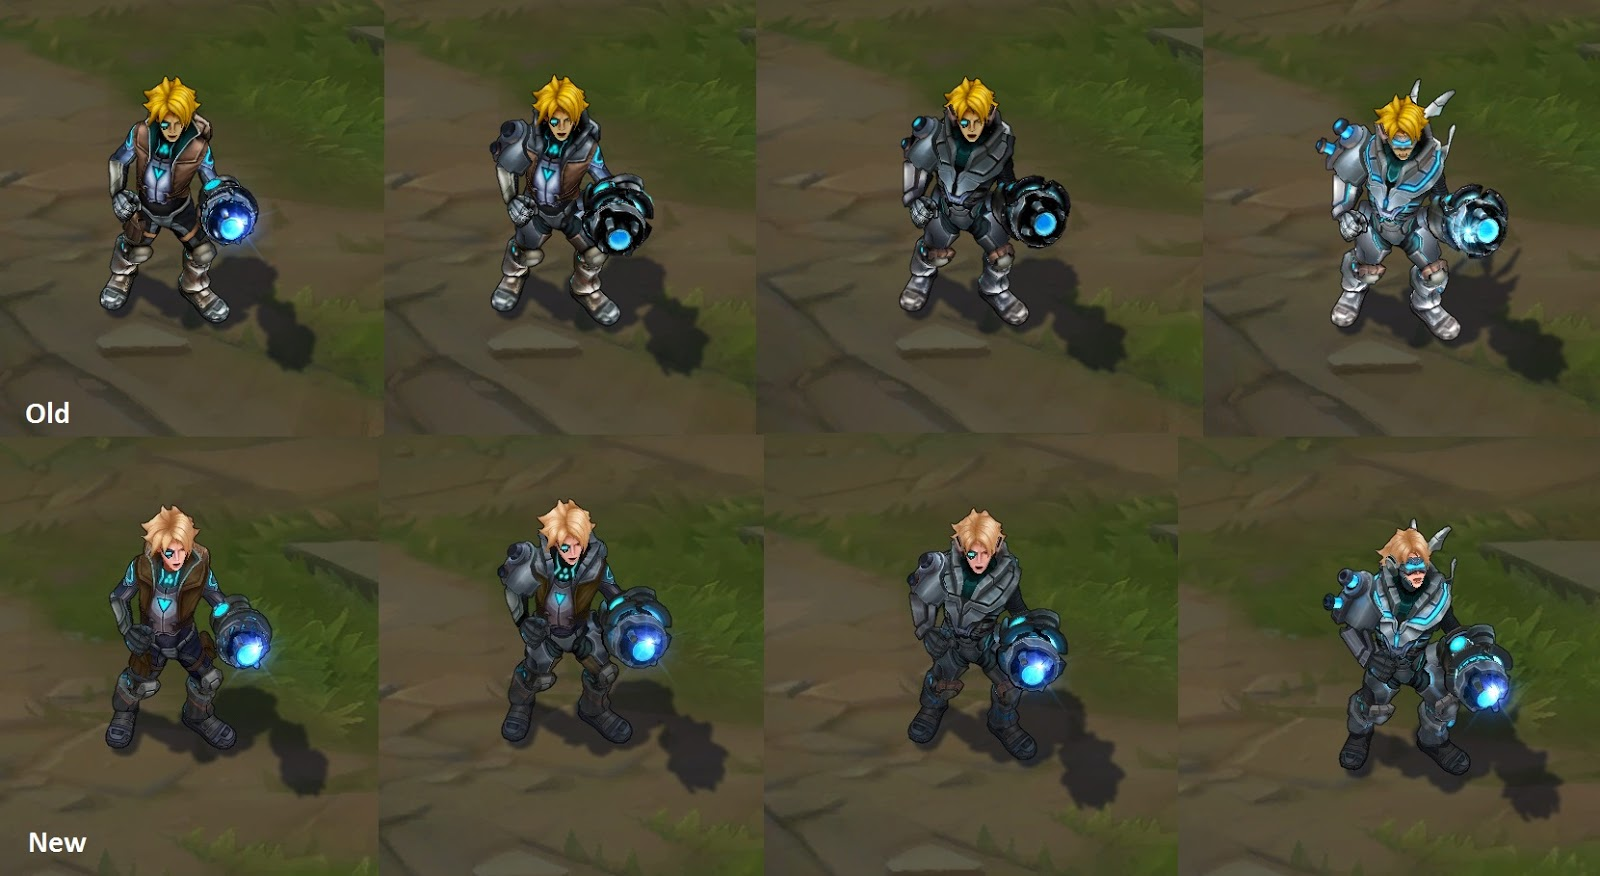 new caitlyn skin pulsefire will also include ezreal